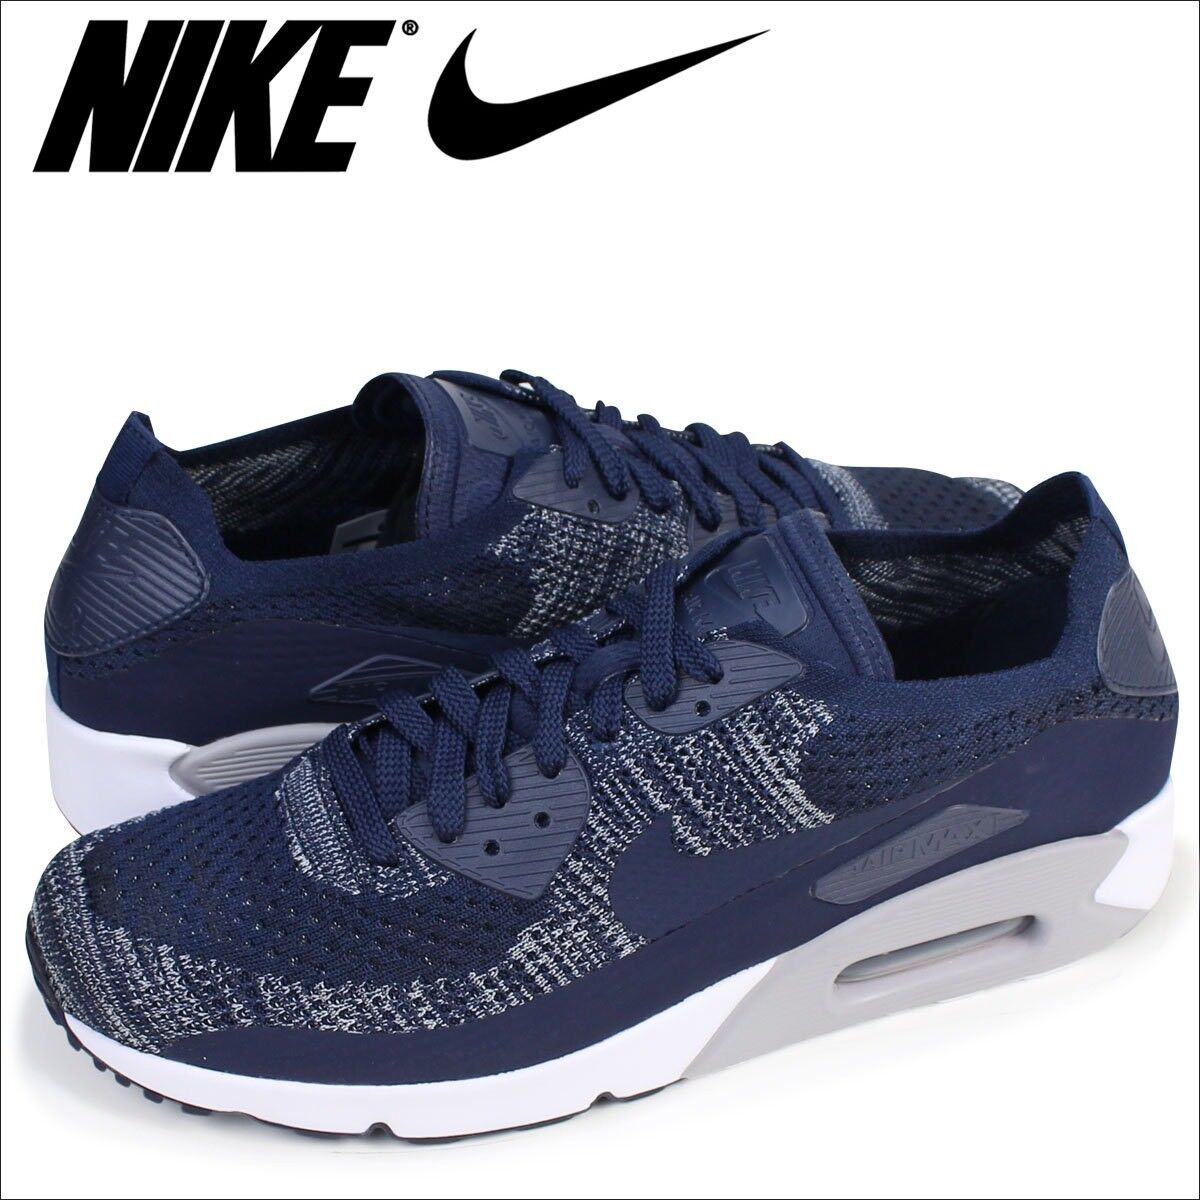 online store 02a59 fa885 ... coupon for nike air max 90 ultra 2.0 flyknit 10.5 navy college navy  10.5 blue grey